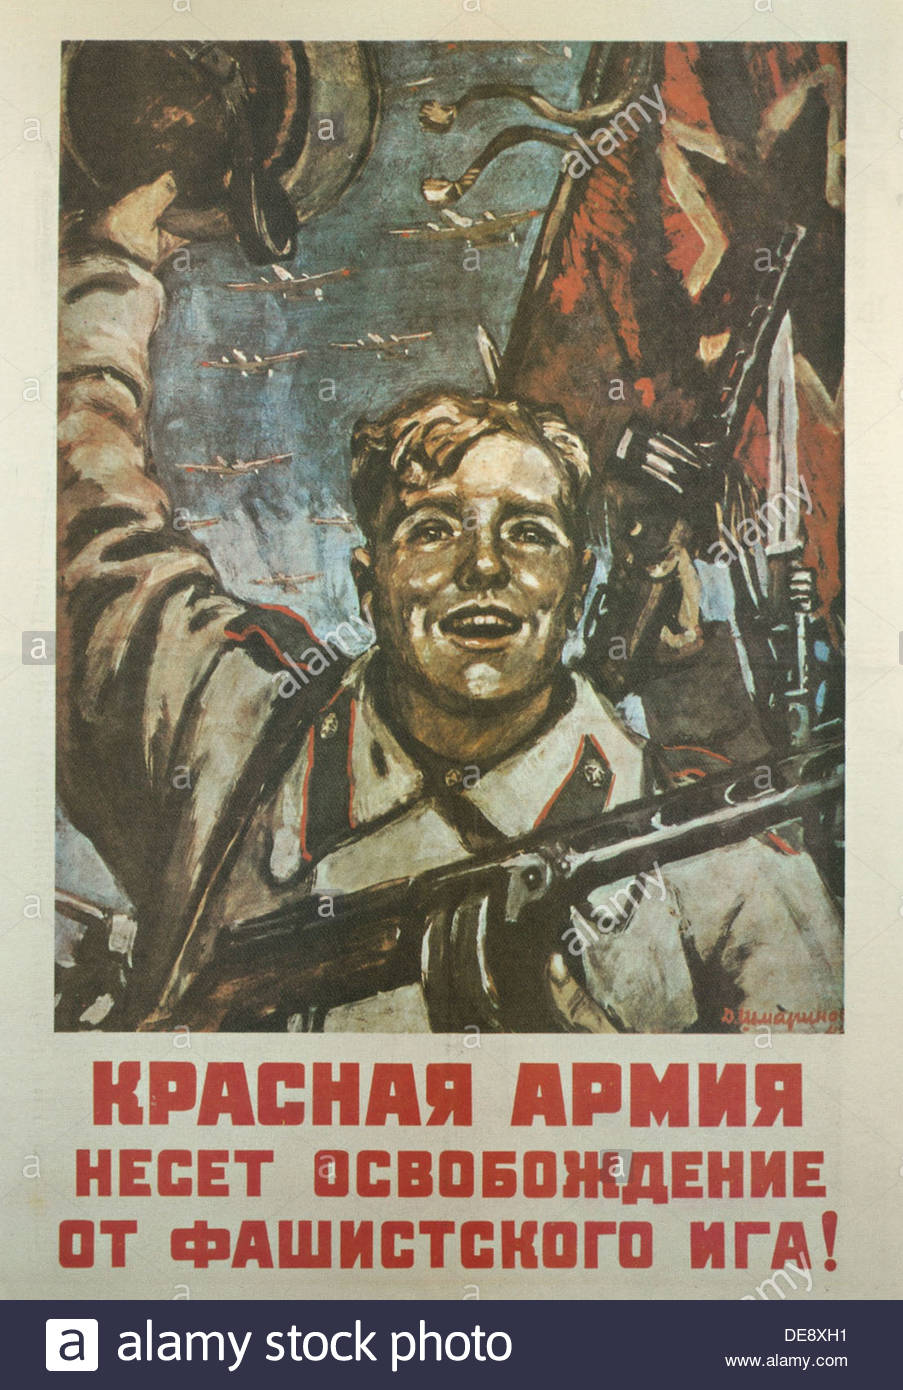 The Red Army brings freedom from the fascist yoke!, 1944. Artist: Shmarinov, Dementi Alexeevich (1907-1999) - Stock Image